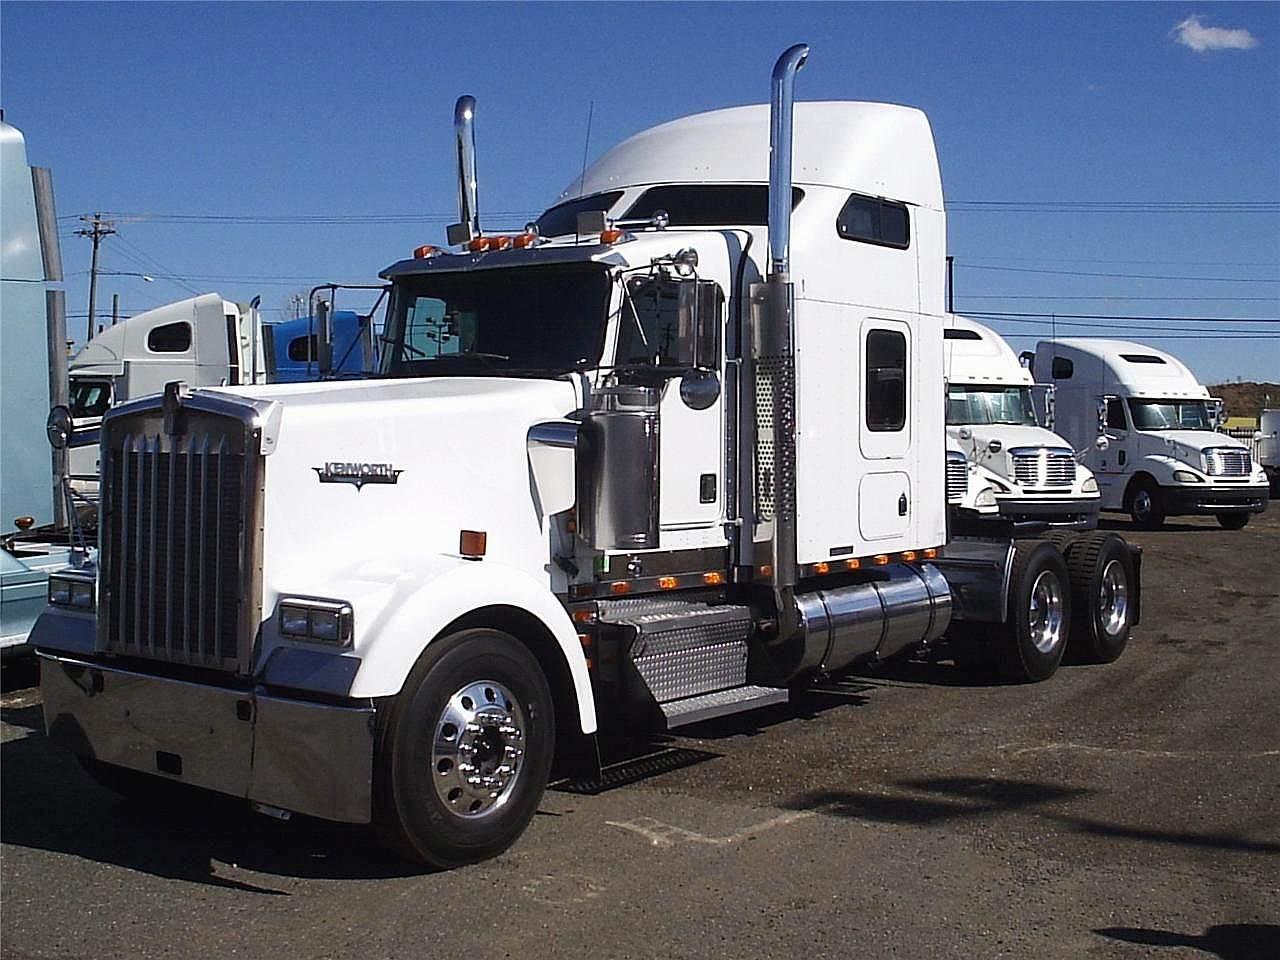 2001 kenworth w900 wiring diagrams central heating diagram s plan plus 99 t800 get free image about